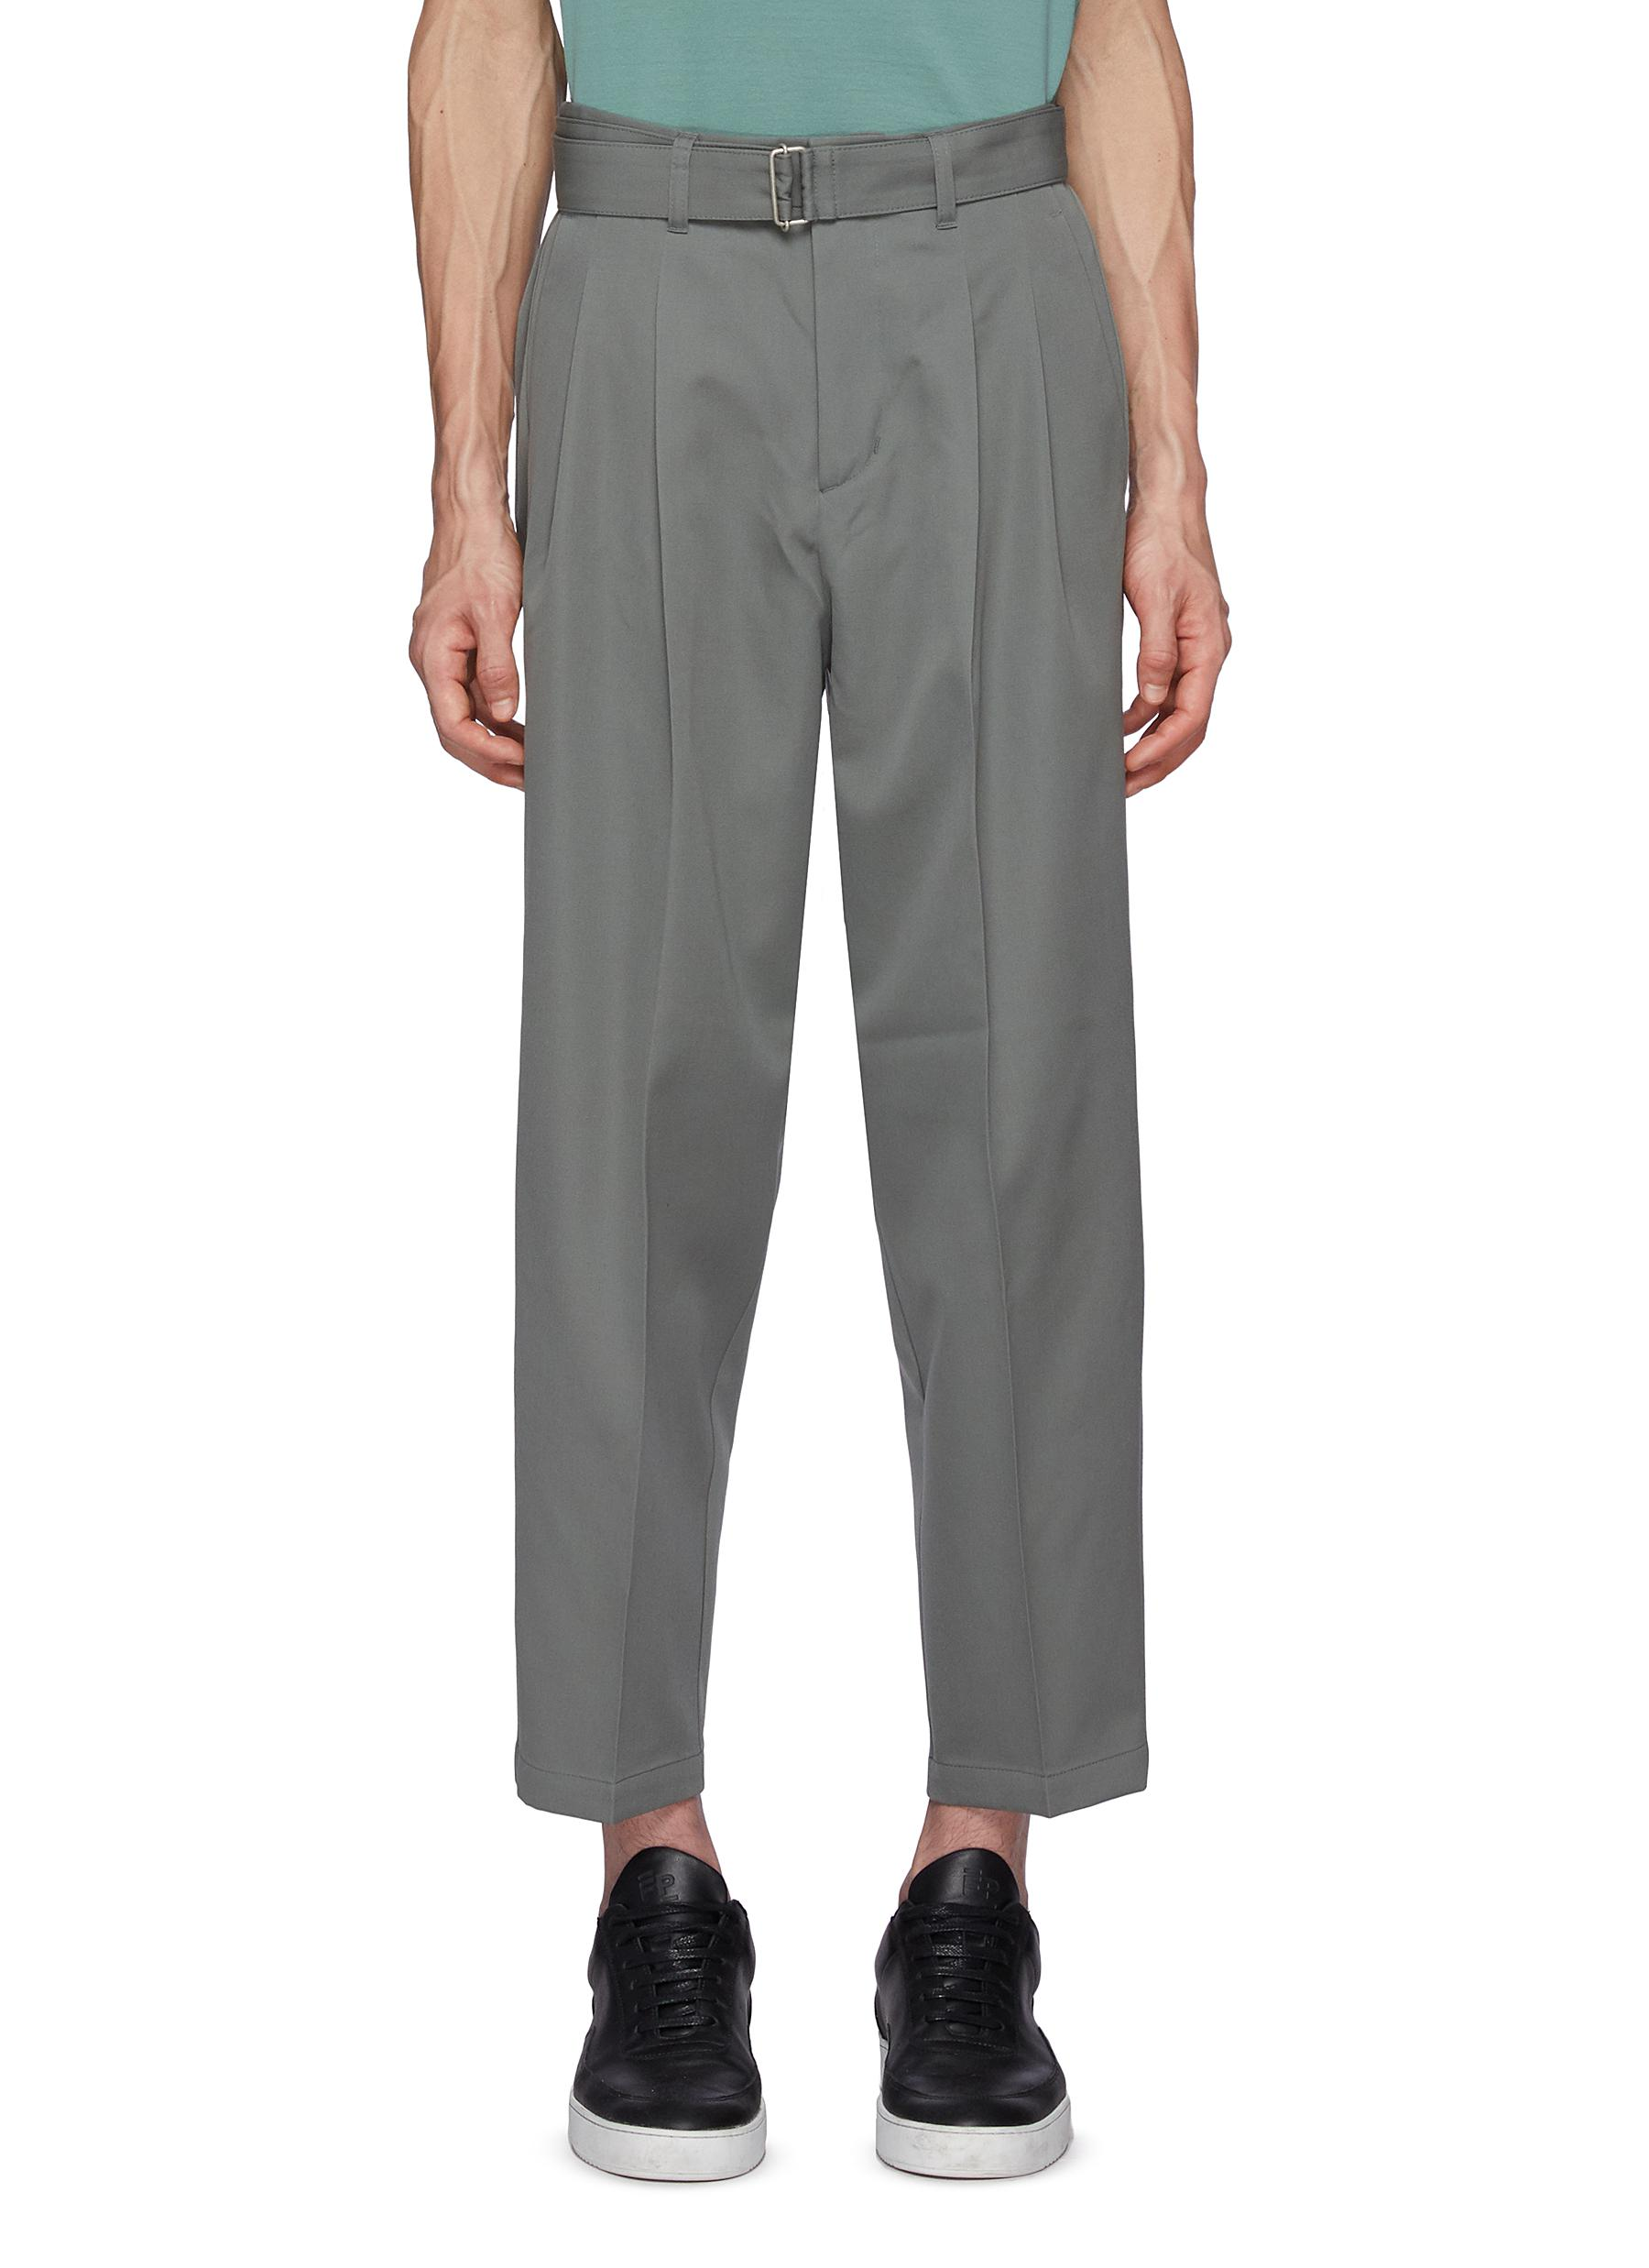 Tapered Fit Wool Gyabardine Two Pleats Belted Trousers